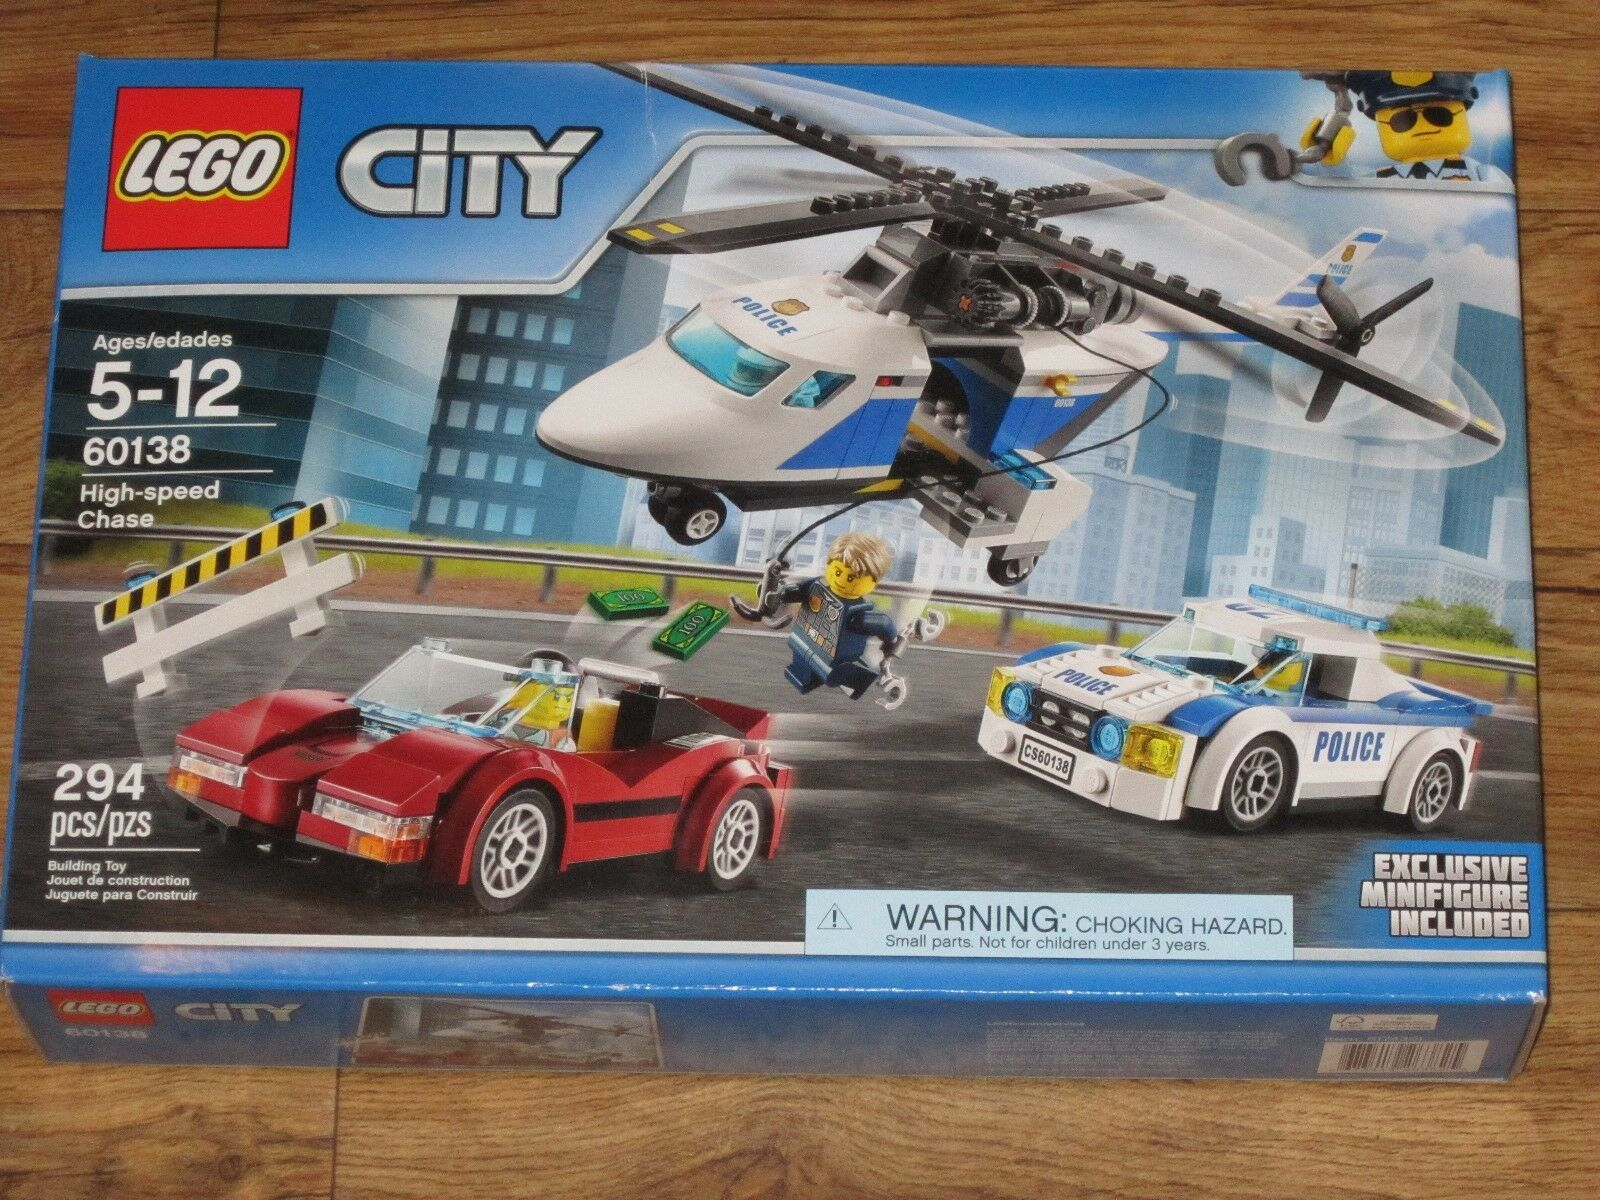 LEGO 60138 City Police - High-speed Chase